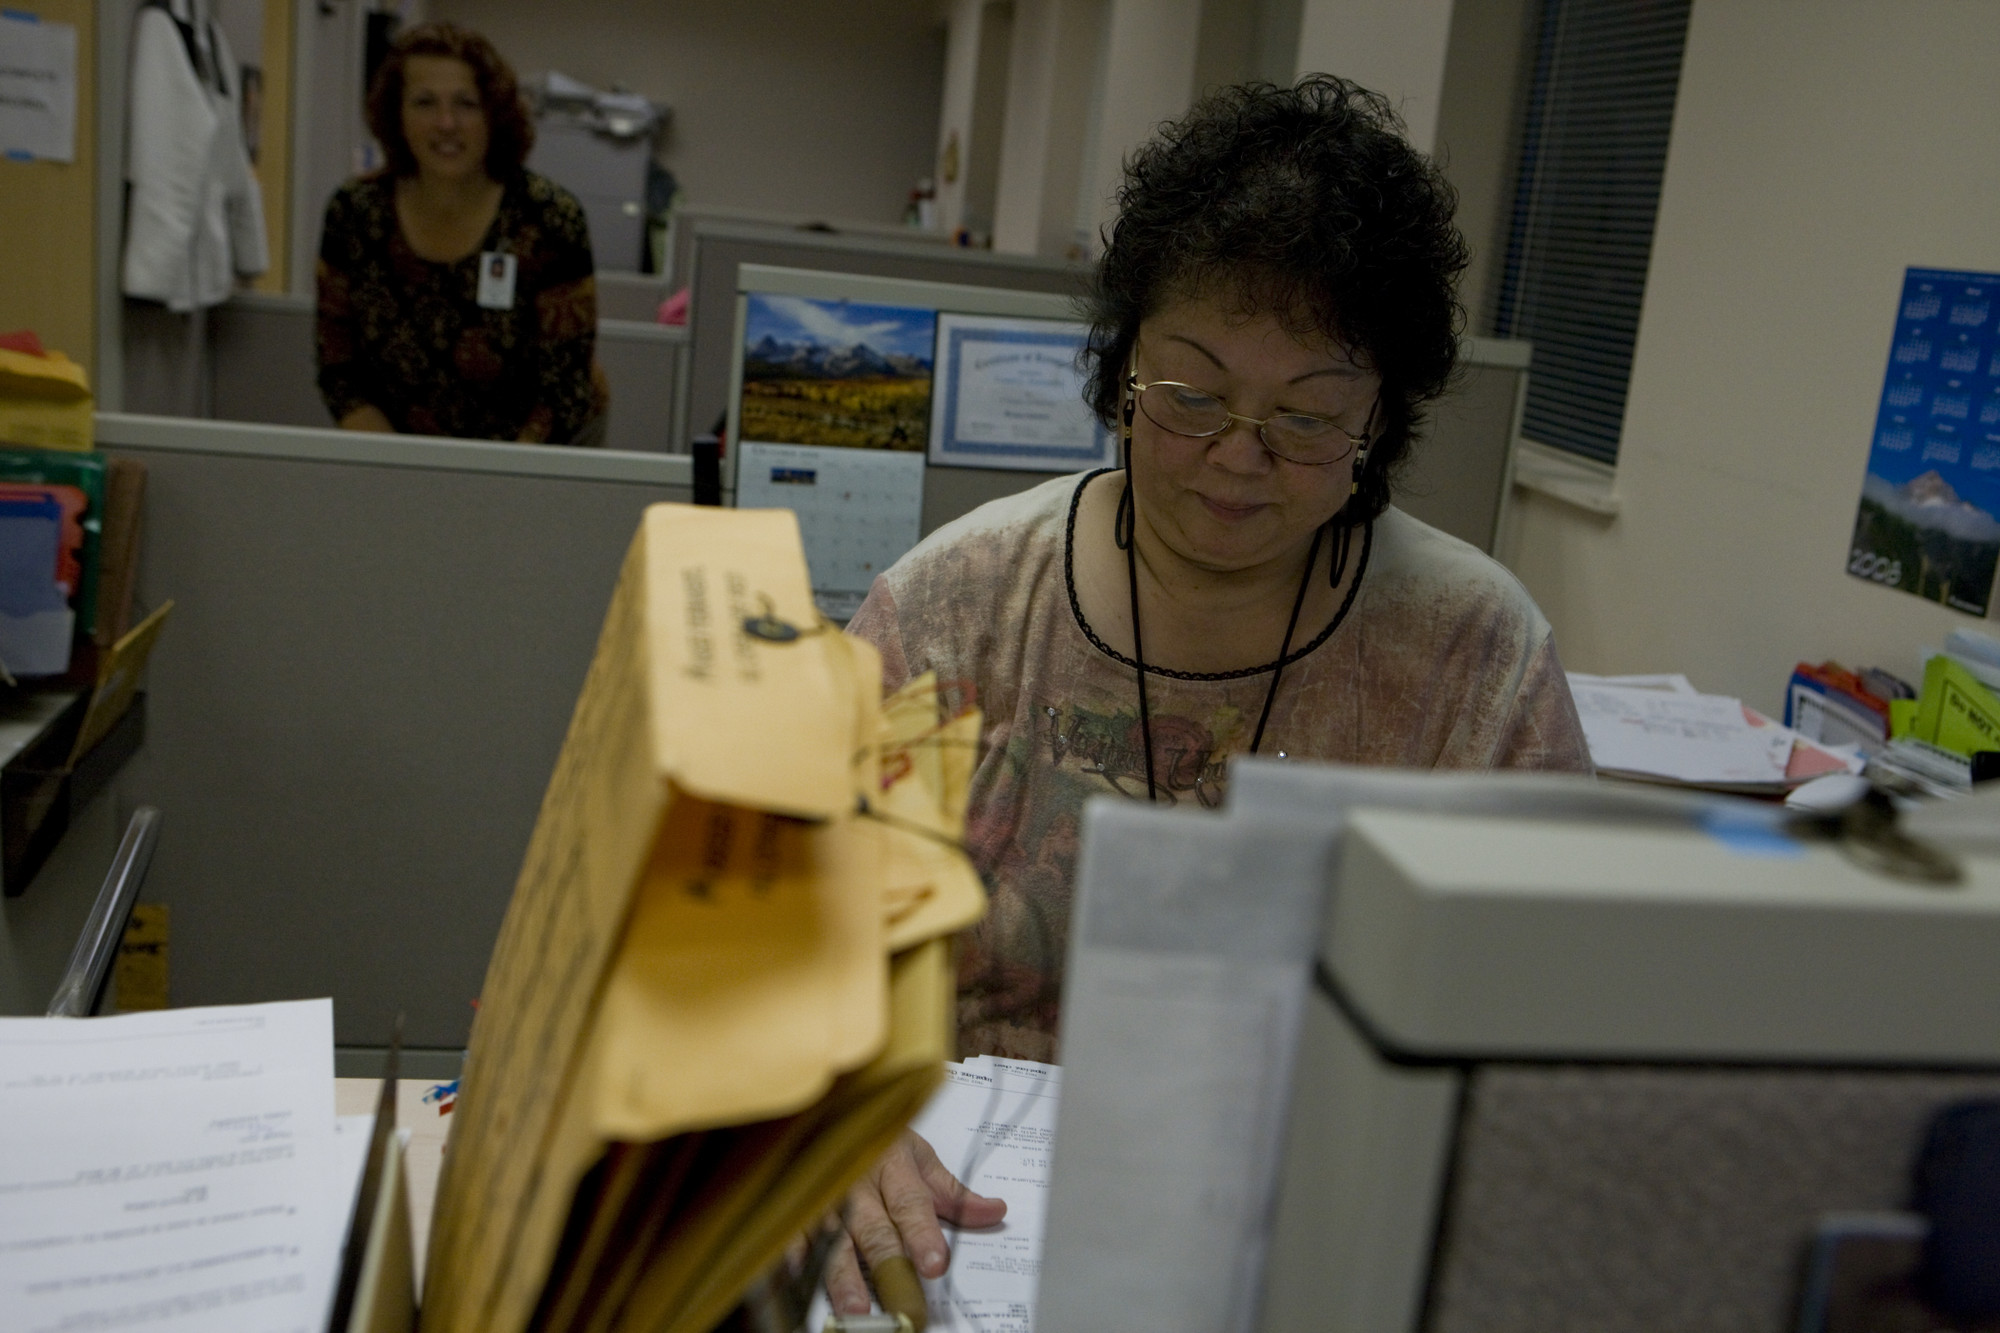 Woman working with documents.